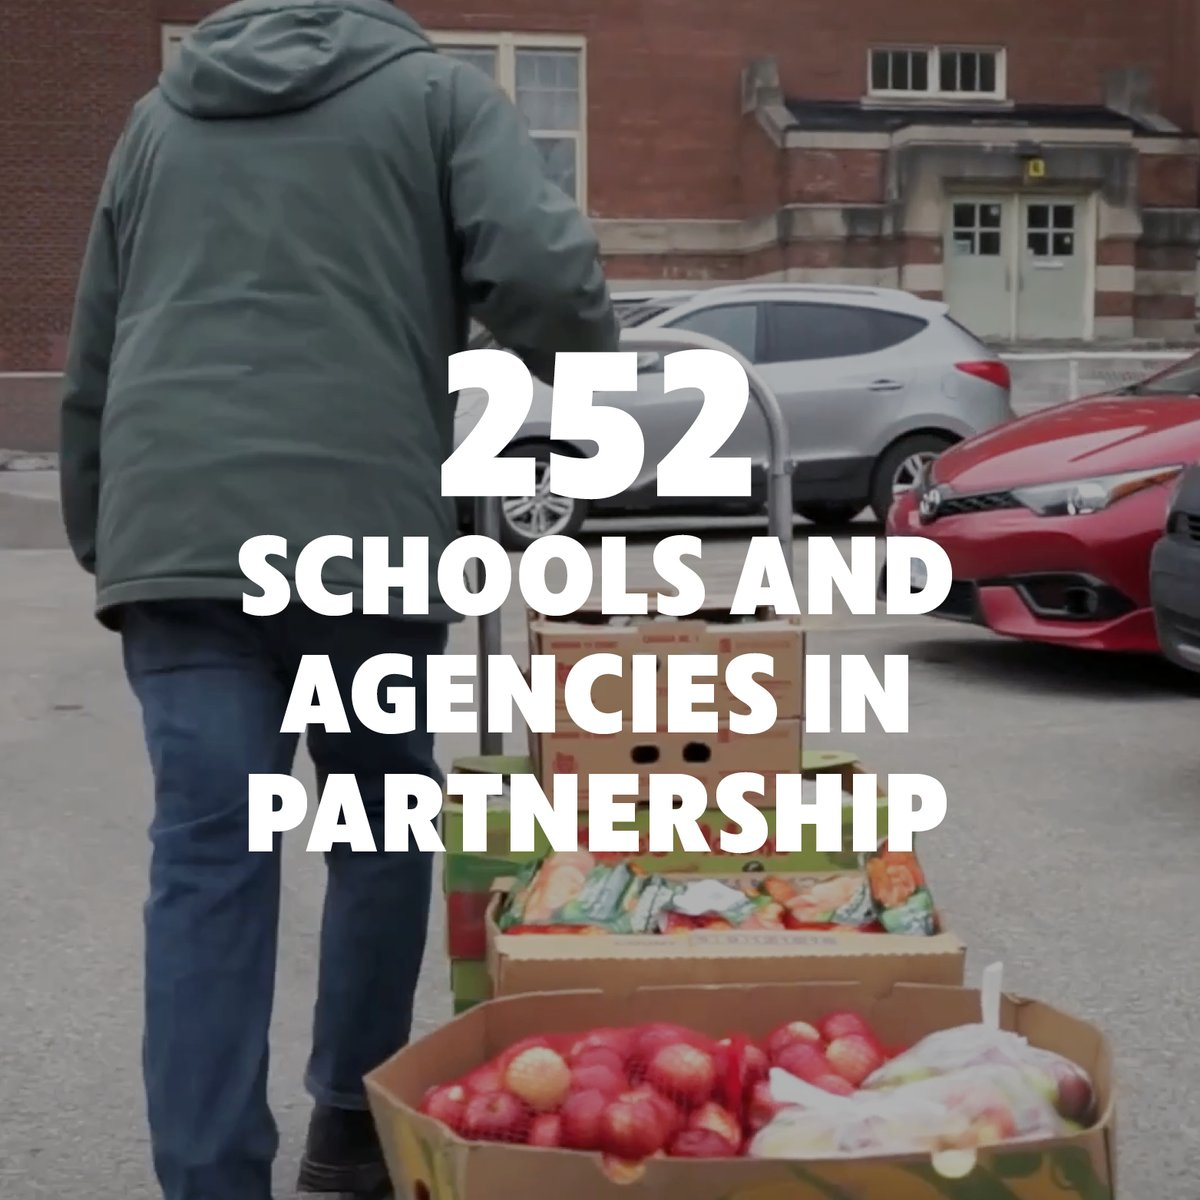 Foodshare 2017: A year in review